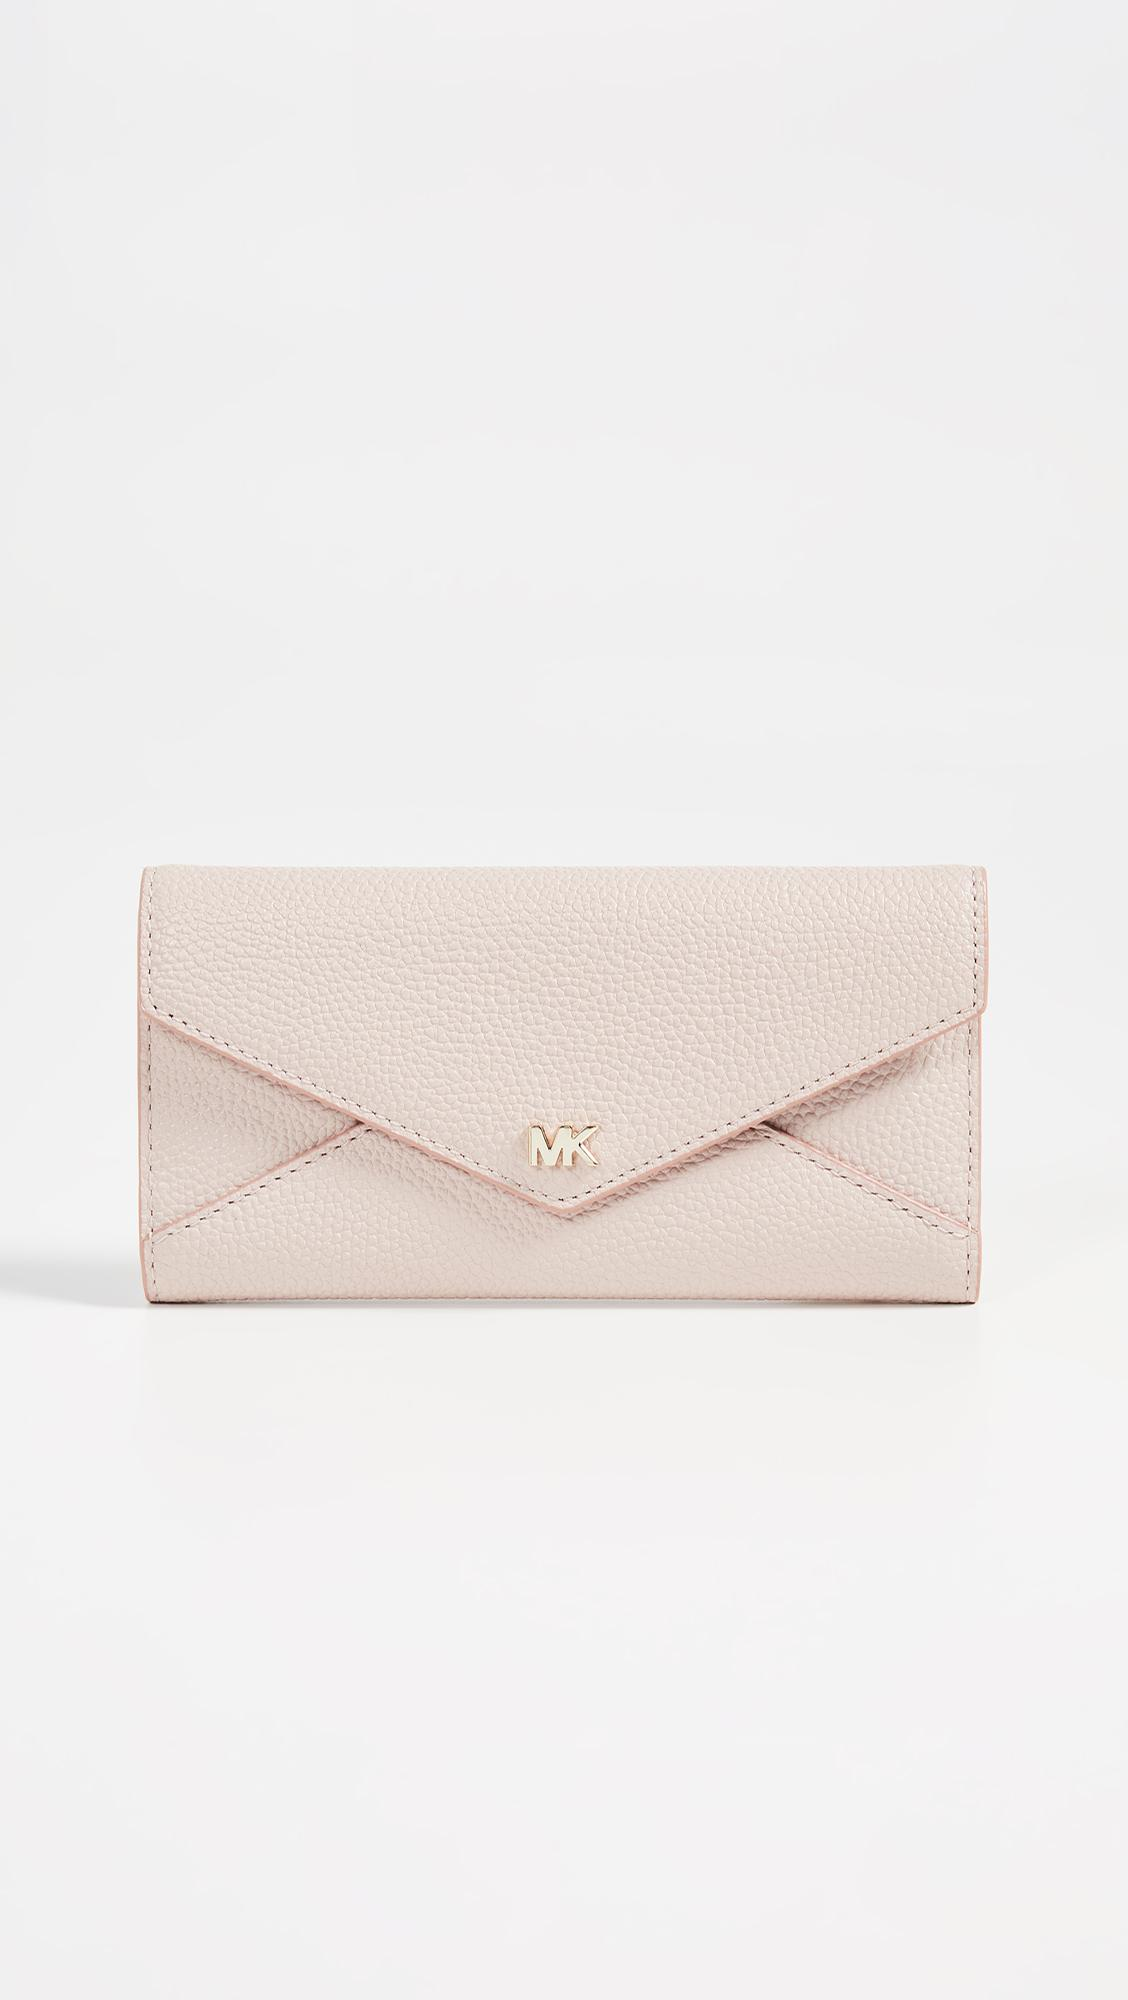 a92a4bad9f0d MICHAEL Michael Kors Large Slim Envelope Trifold Wallet in Pink - Lyst